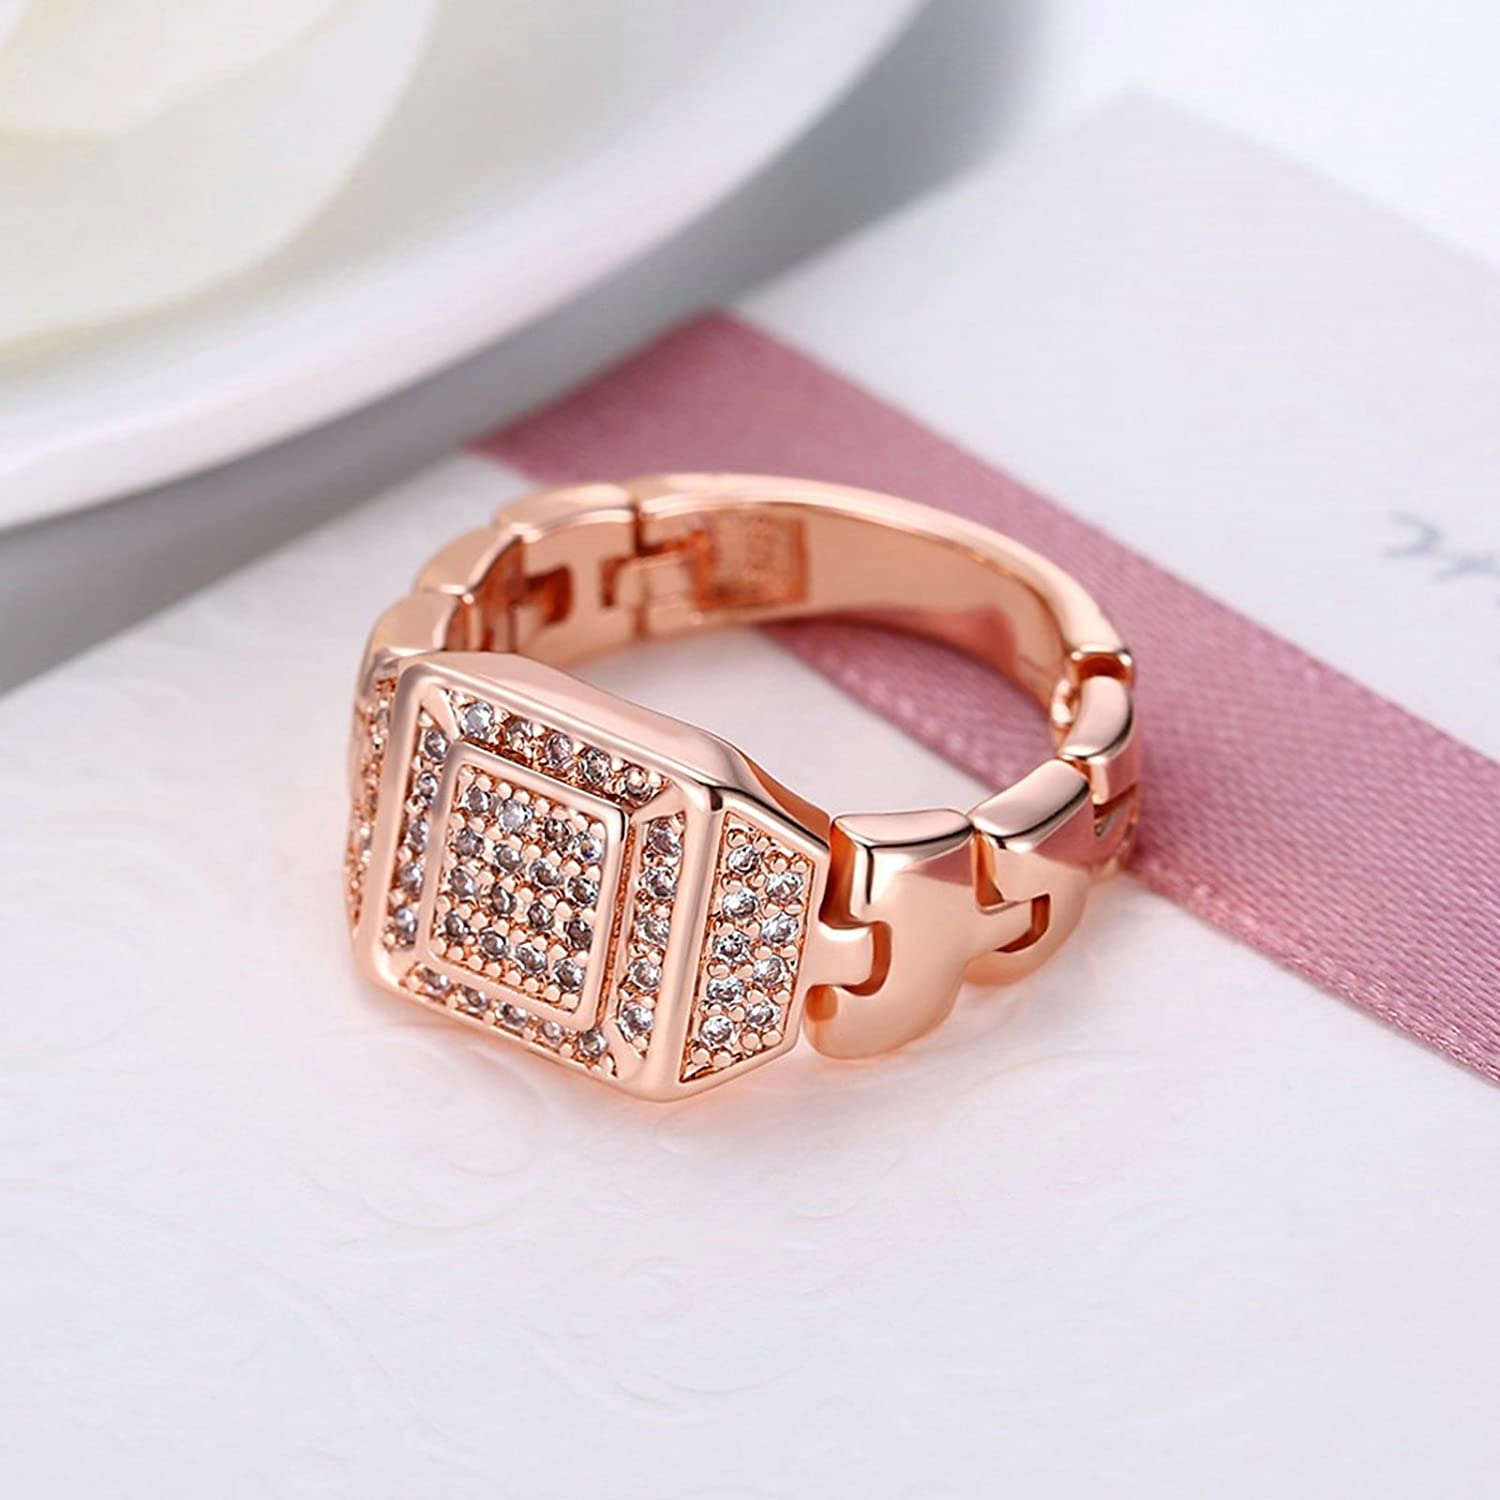 Amazon.com: AMDXD Gold Plated Wedding Rings for Women Square ...